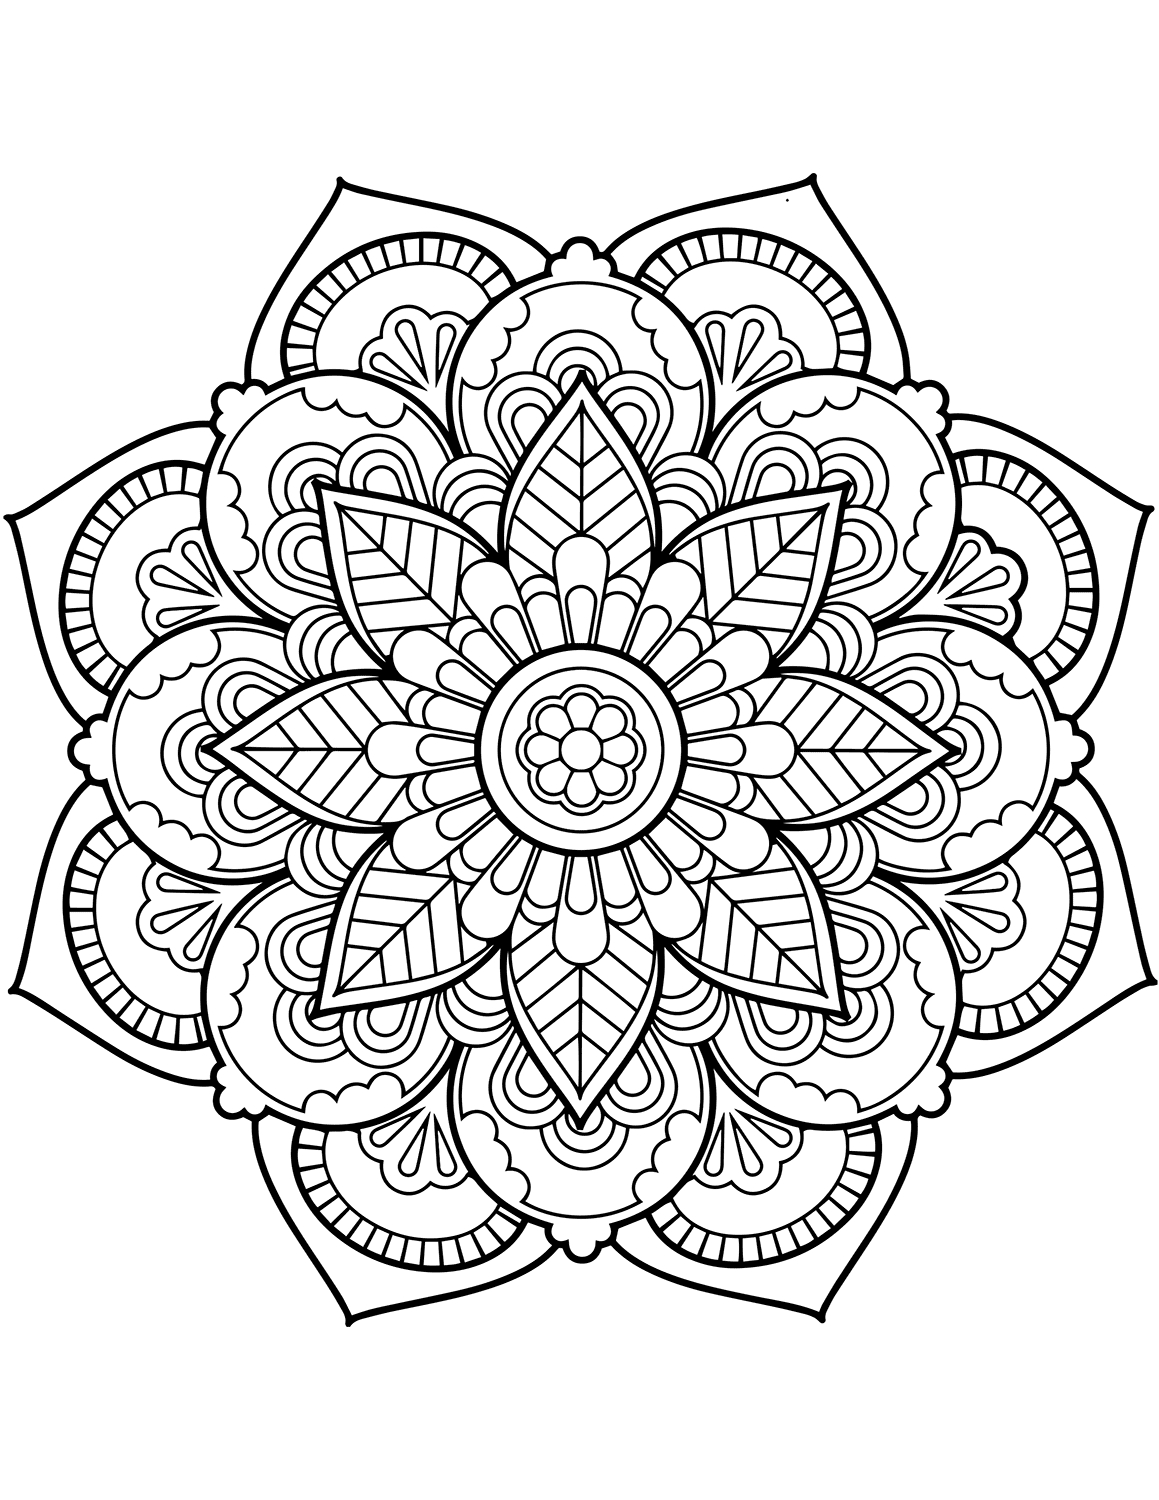 Flower Mandala Coloring Pages - Best Coloring Pages For Kids - Mandala Coloring Free Printable